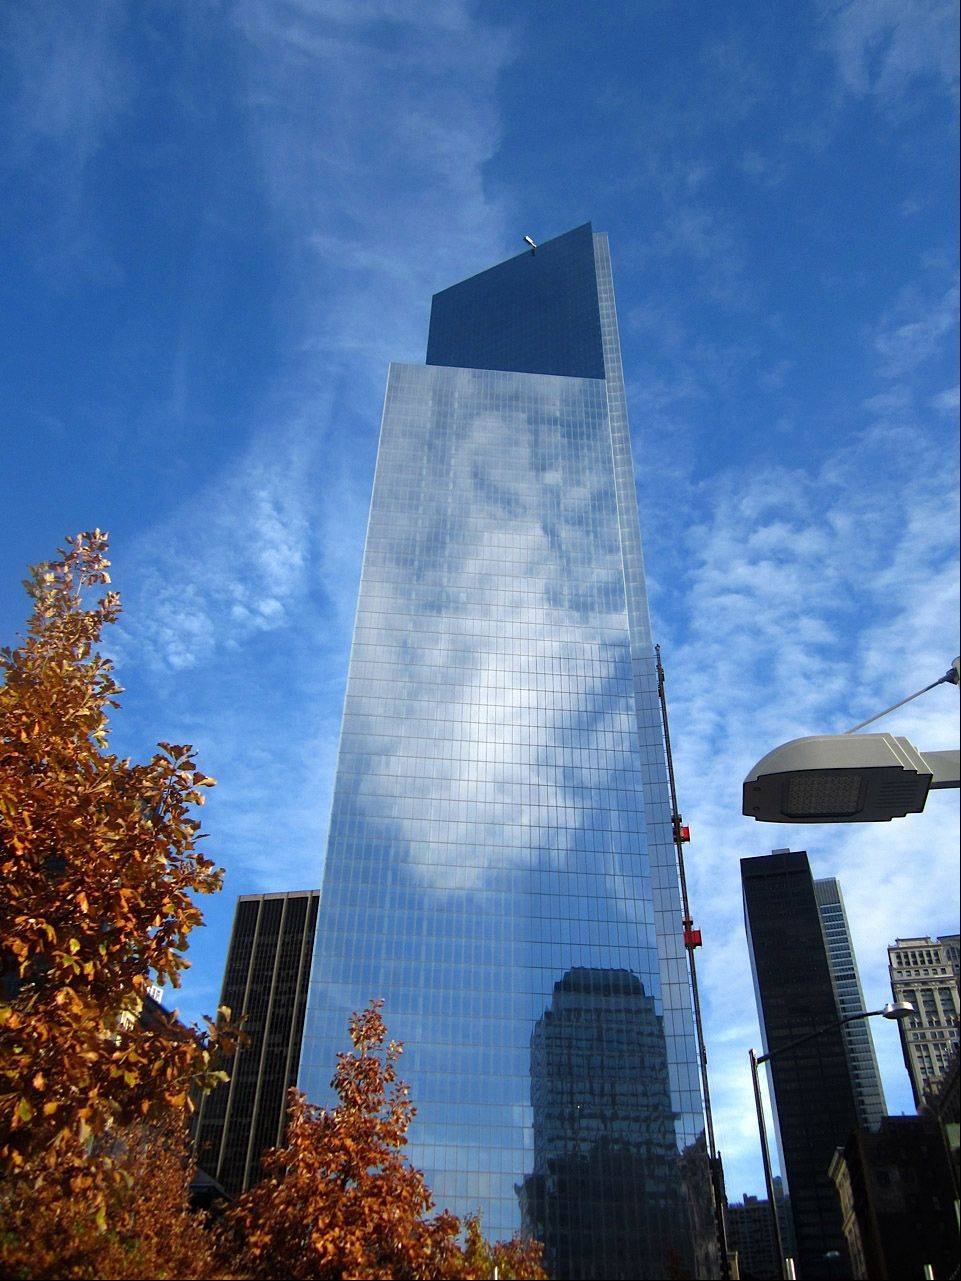 Clouds are reflected in the Sept. 11 Memorial earlier this month in New York City.